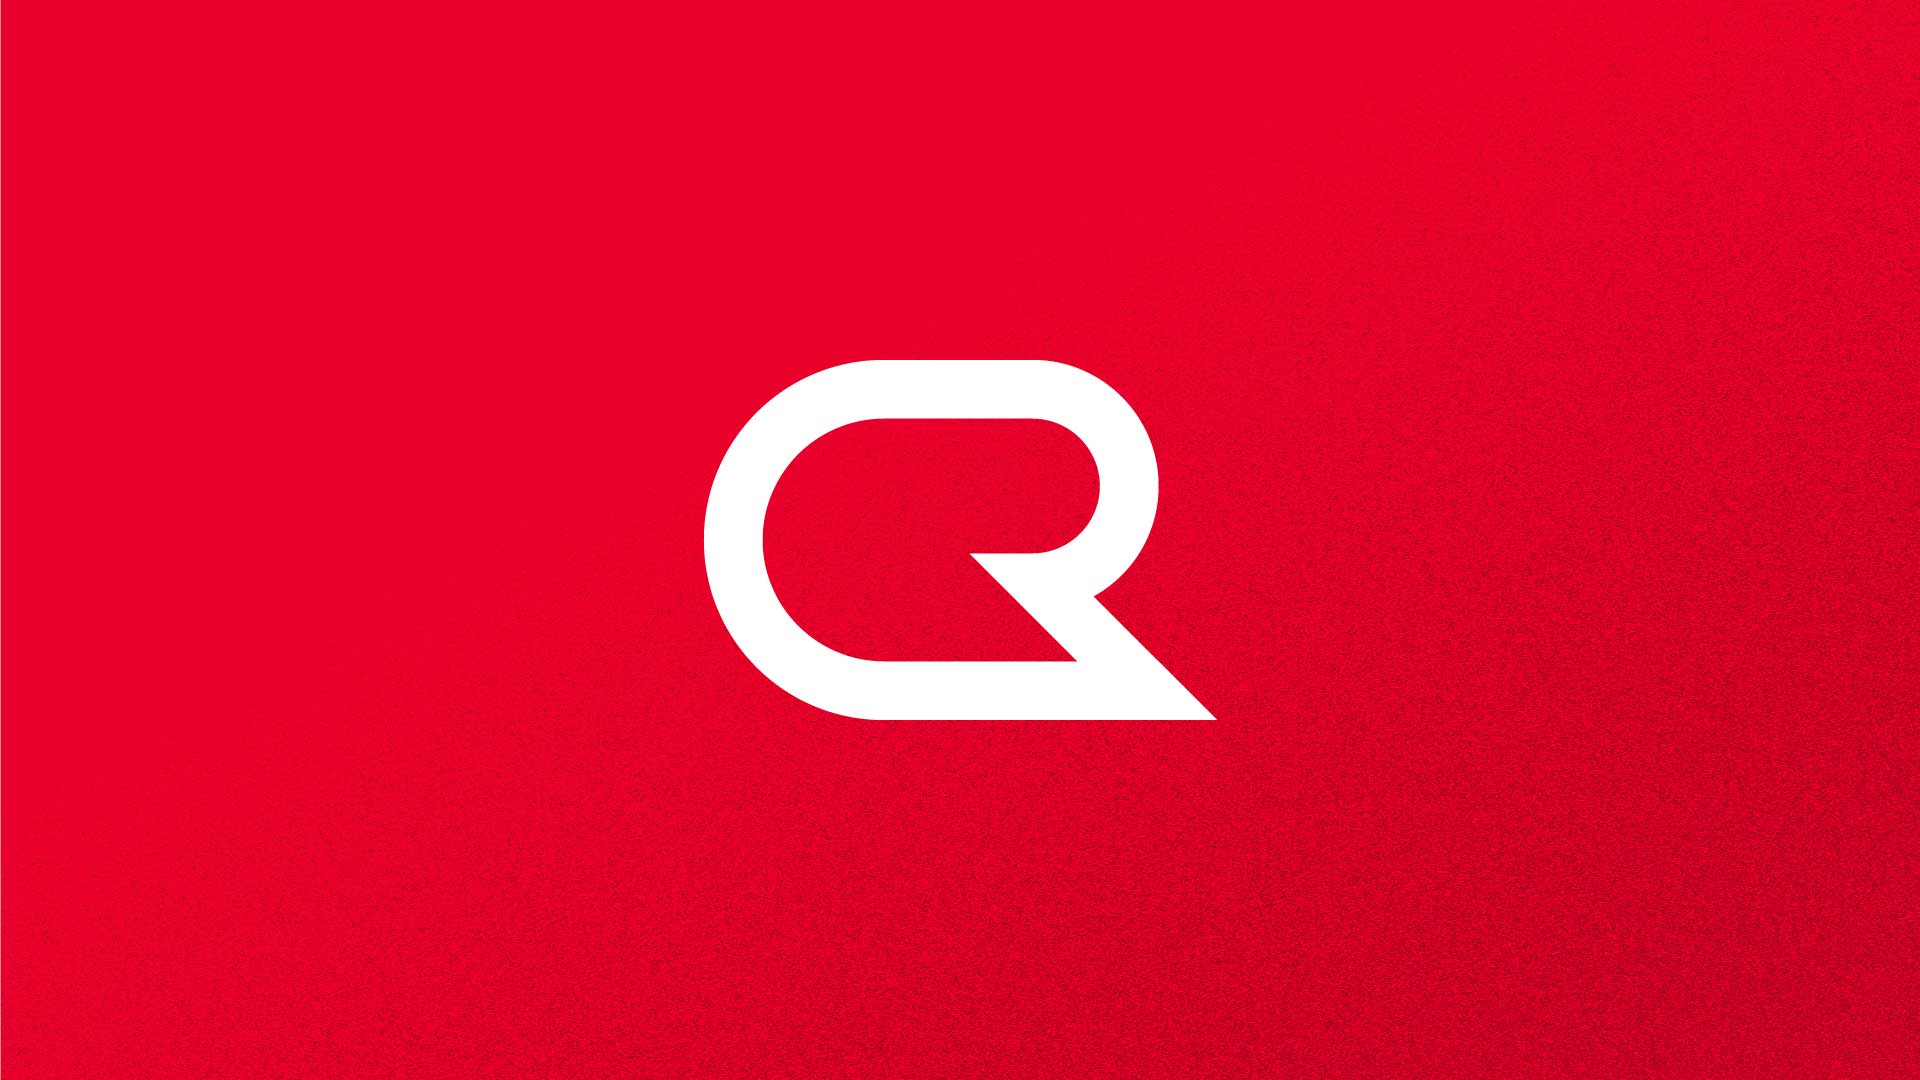 ChappellRoberts' logo on a red background.